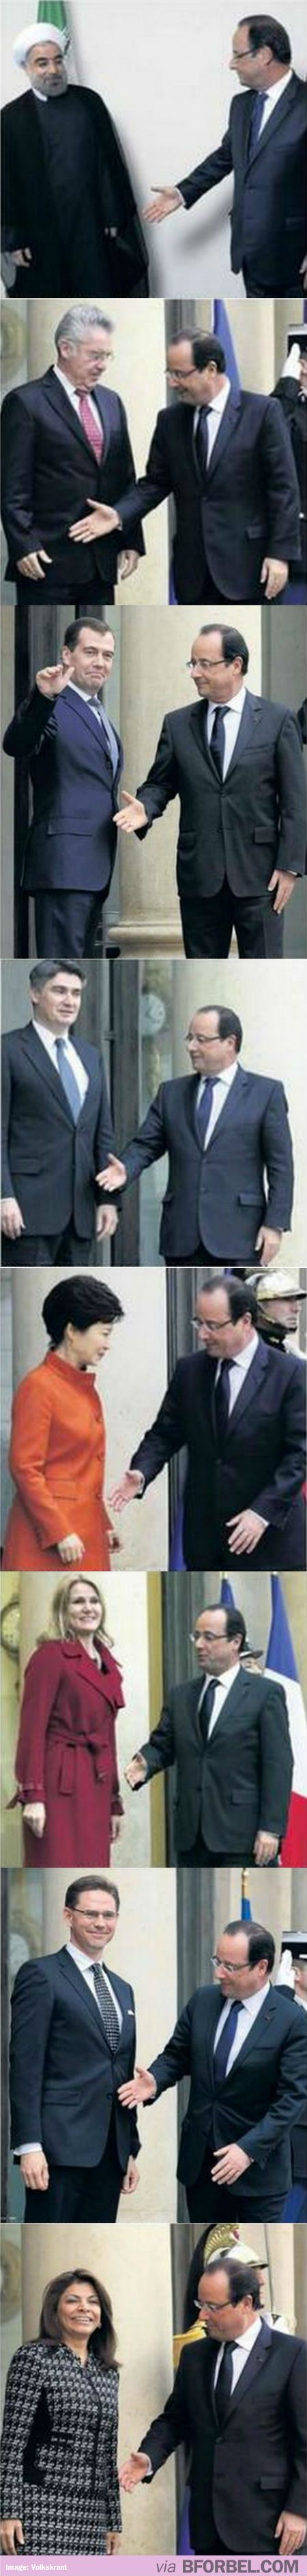 8+Times+The+French+President,+Francois+Hollande,+Failed+At+A+Handshake…